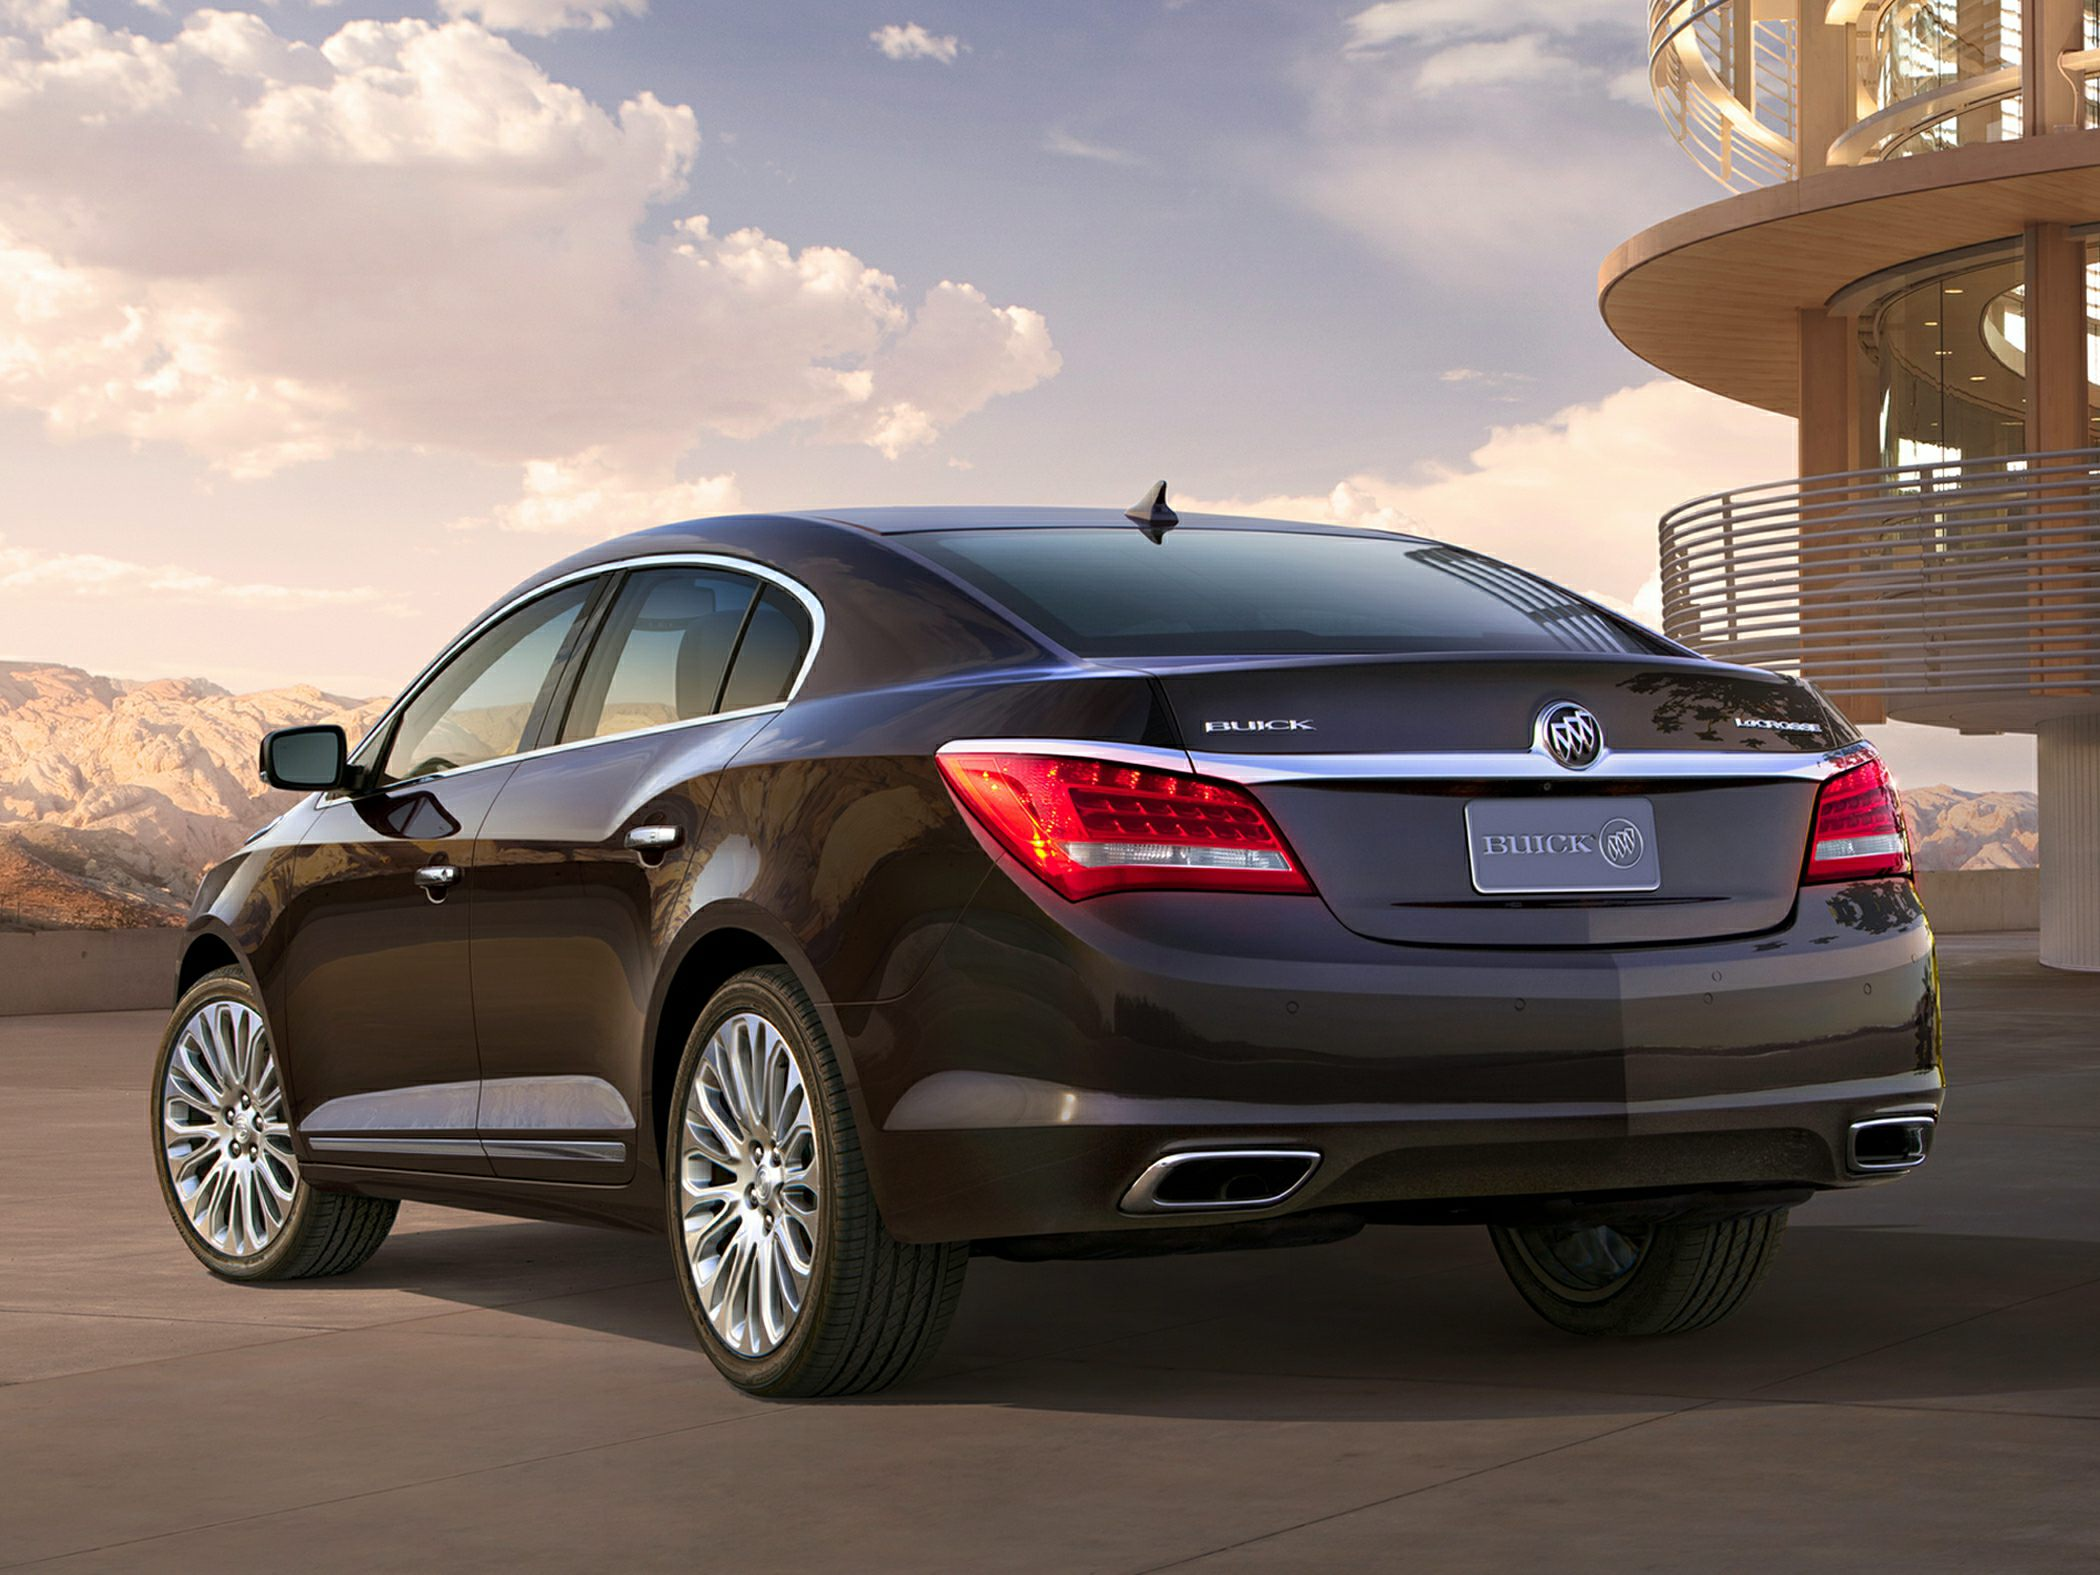 2016 buick lacrosse styles features highlights. Black Bedroom Furniture Sets. Home Design Ideas